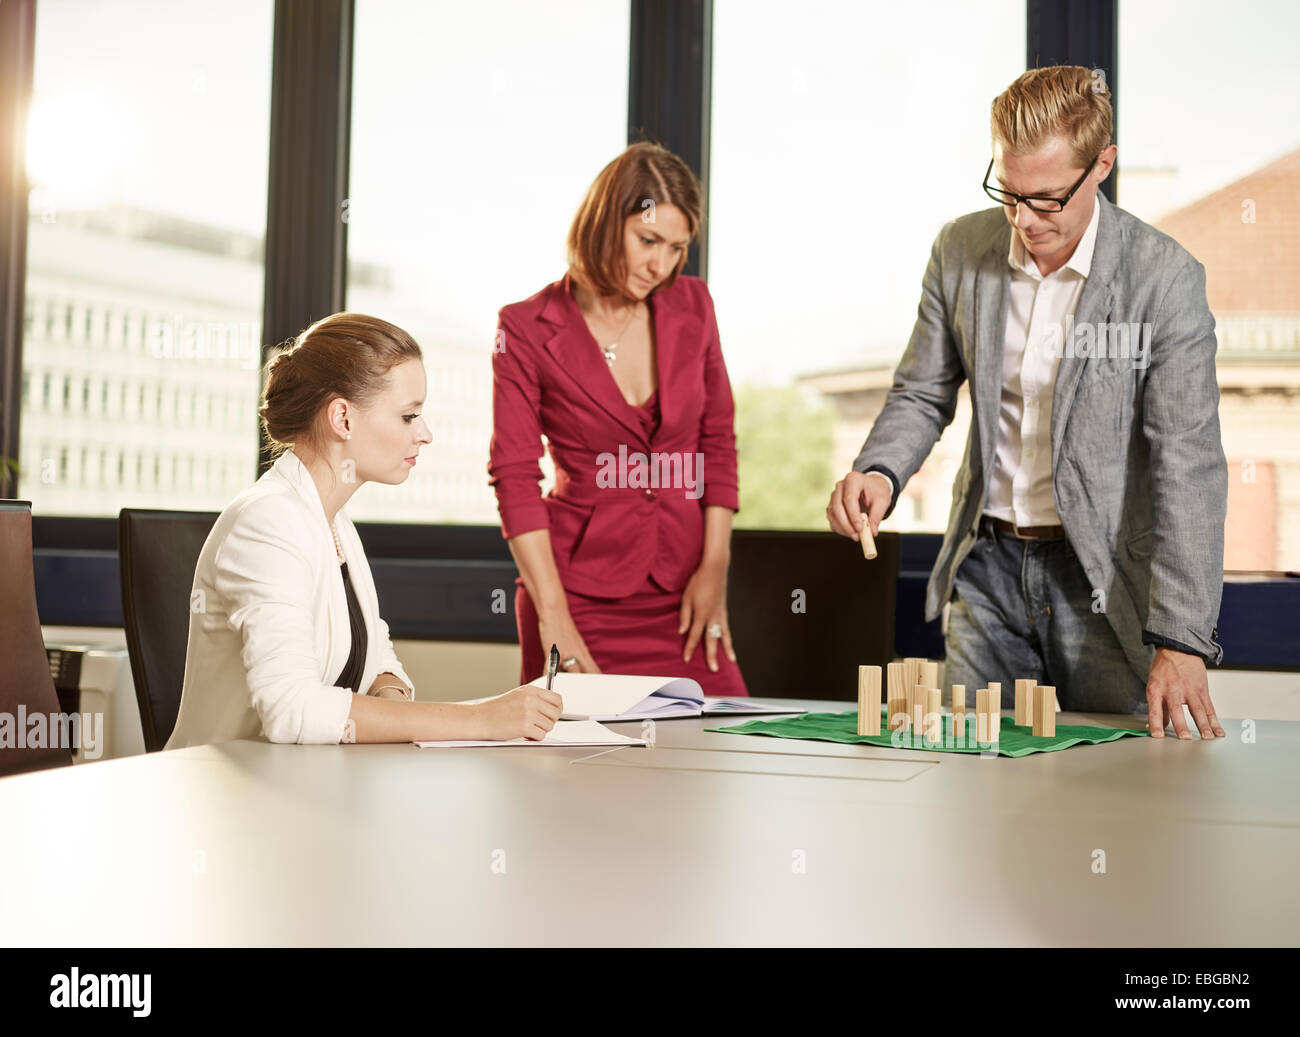 Business coach with clients using a system board, Innsbruck, Tyrol, Austria - Stock Image